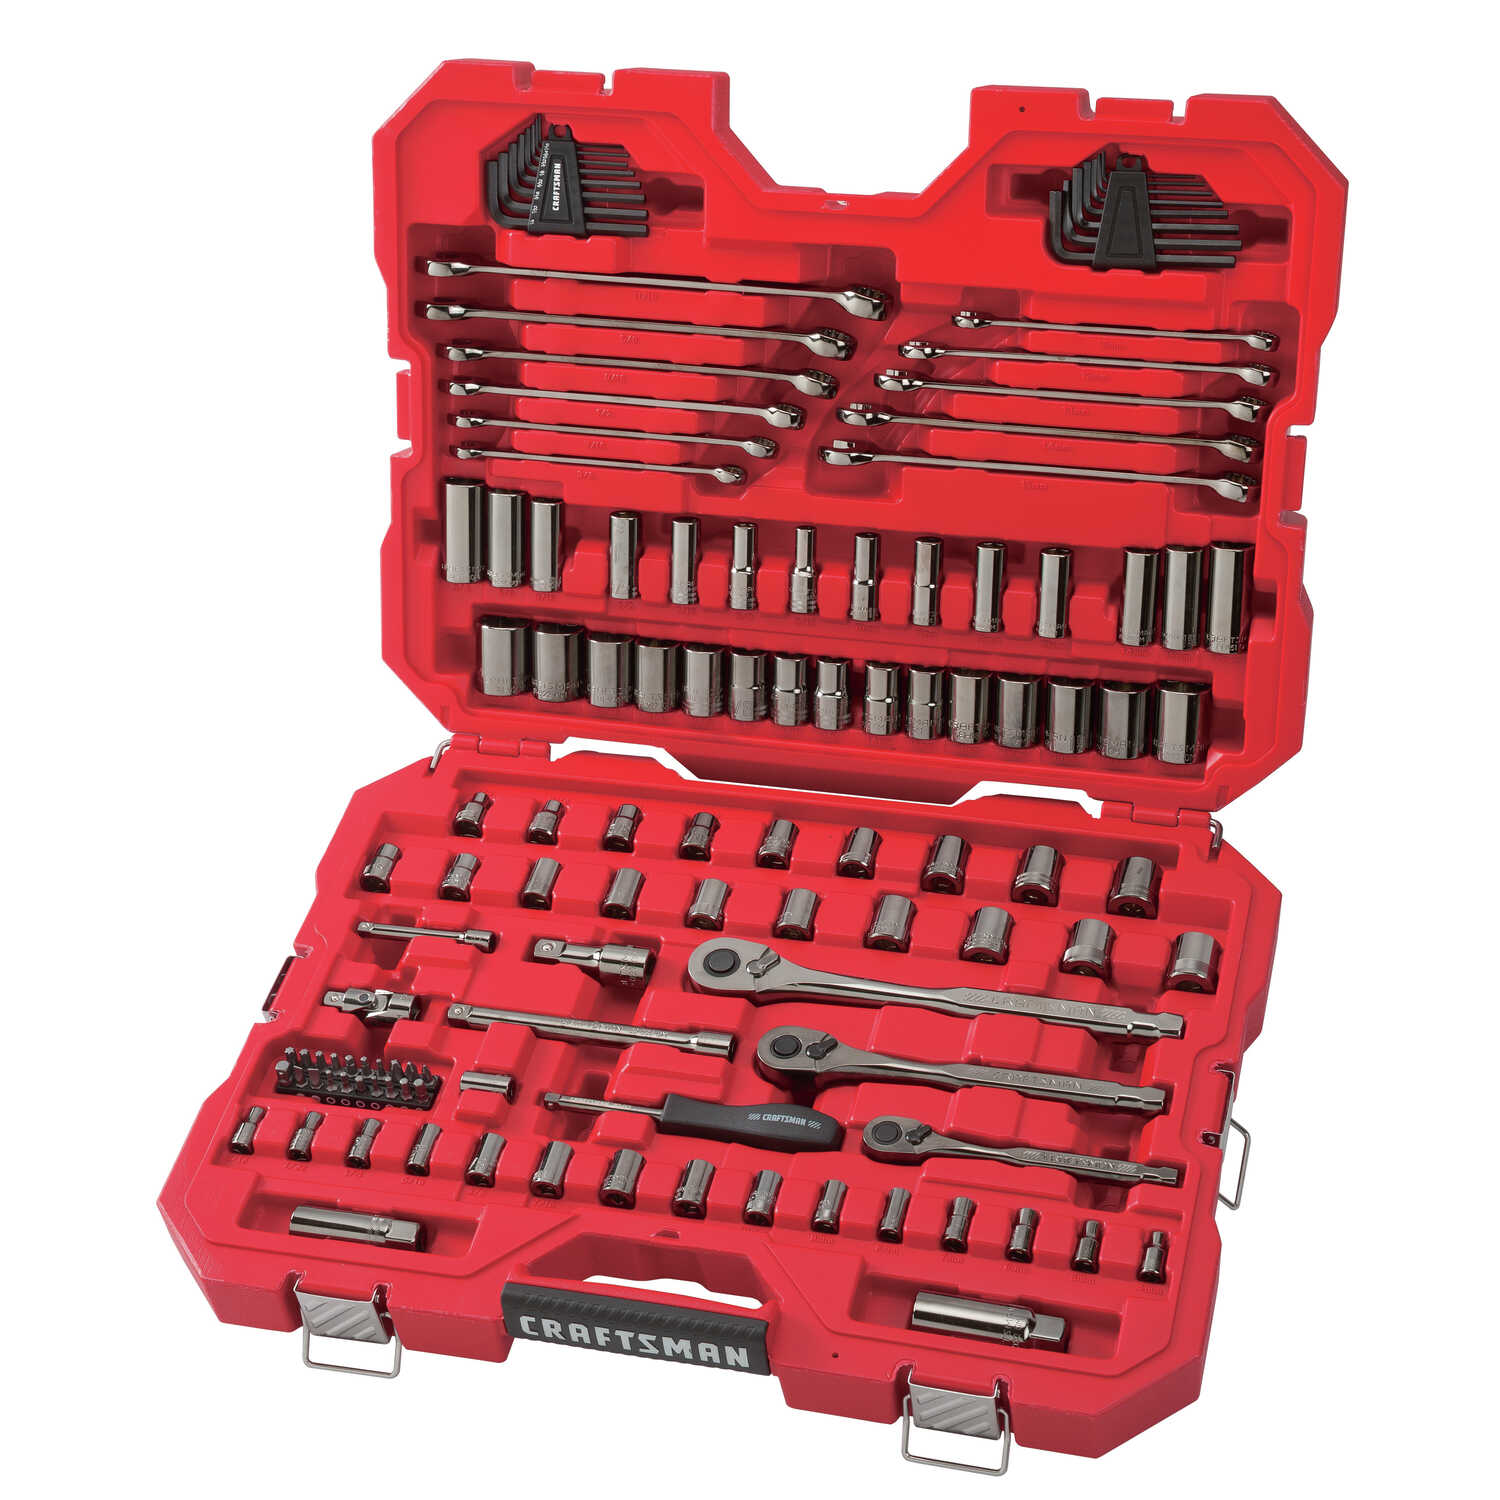 Craftsman  1/4, 3/8 and 1/2 in. drive  Metric and SAE  6 Point Mechanic's Tool Set  121 pc.